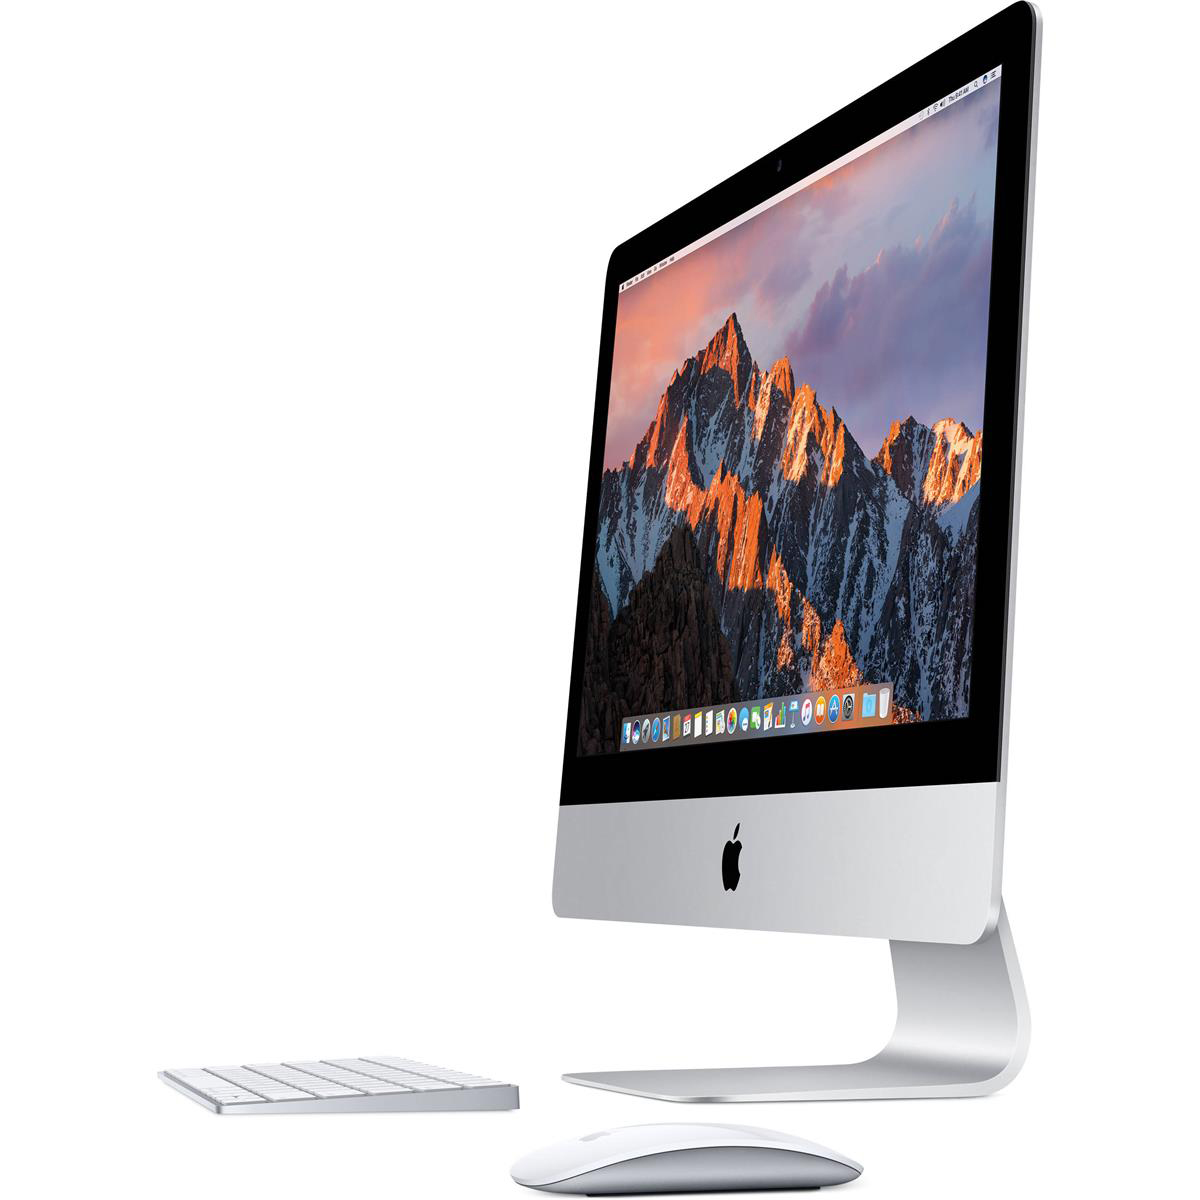 Apple iMac 27in 5K Display MacOSX 3.4GHz i5 processor 8GB RAM 1TB HDD WiFi Bluetooth USB 3.0 Ref MNE92B/A